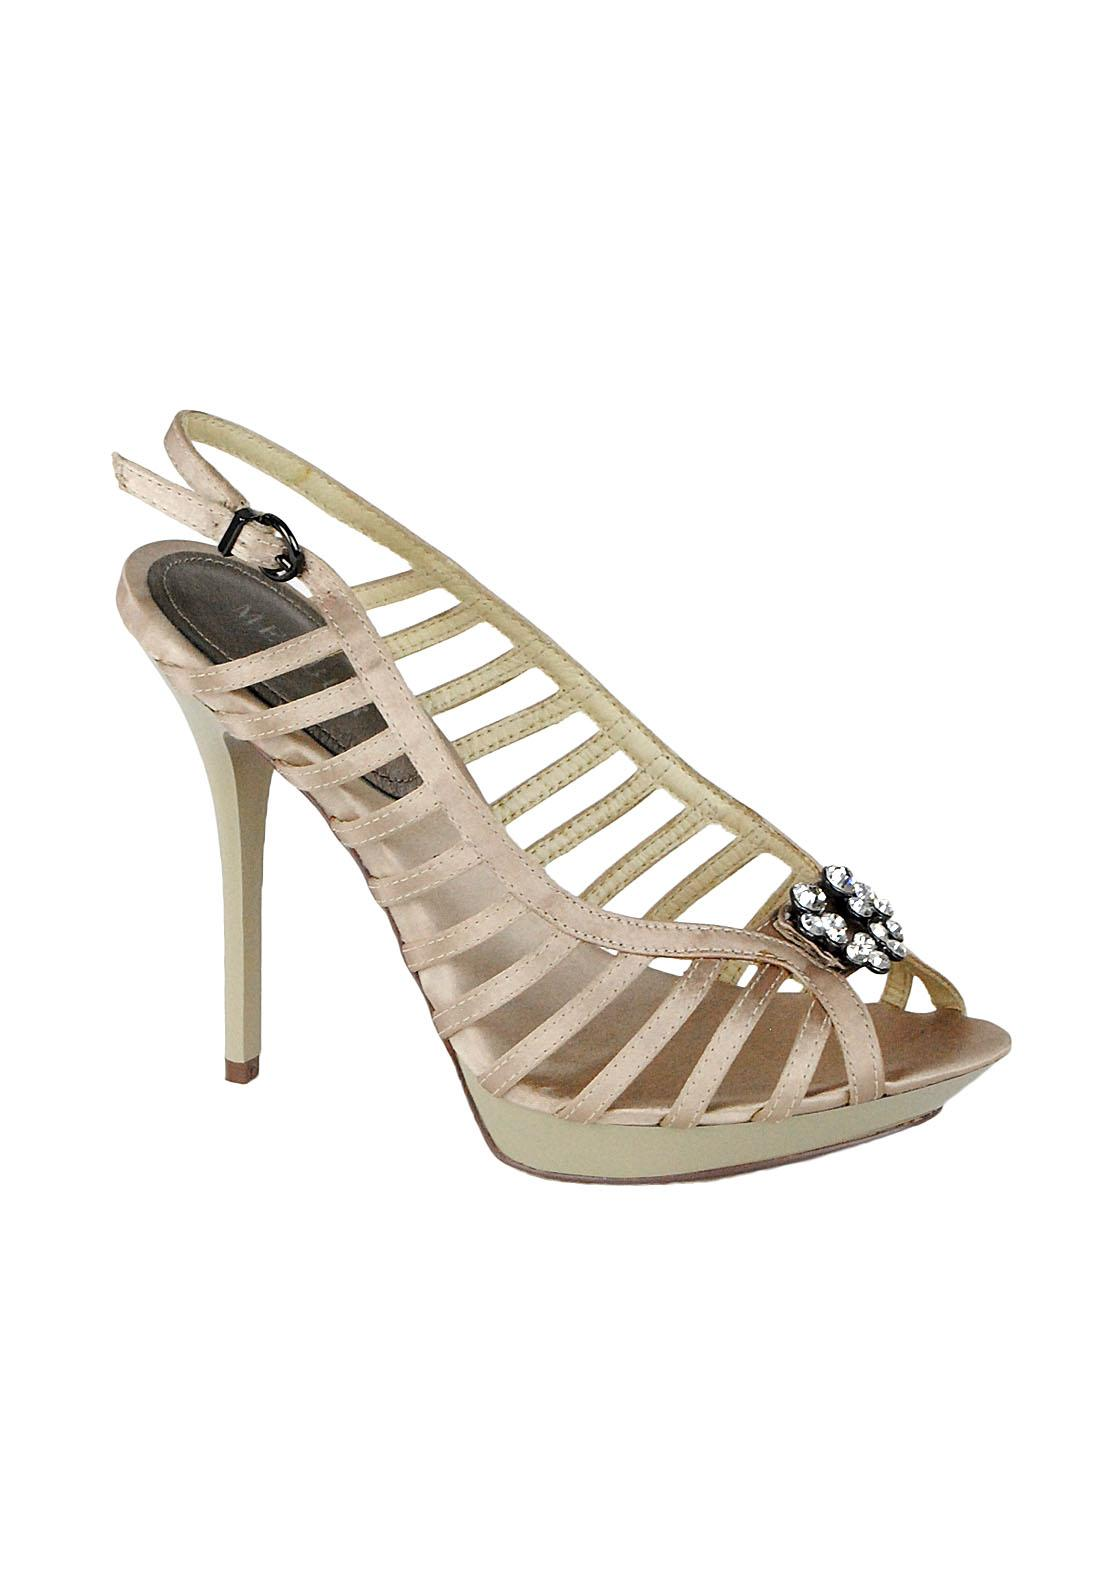 Menbur Ballard High Heel Sandals, Gold